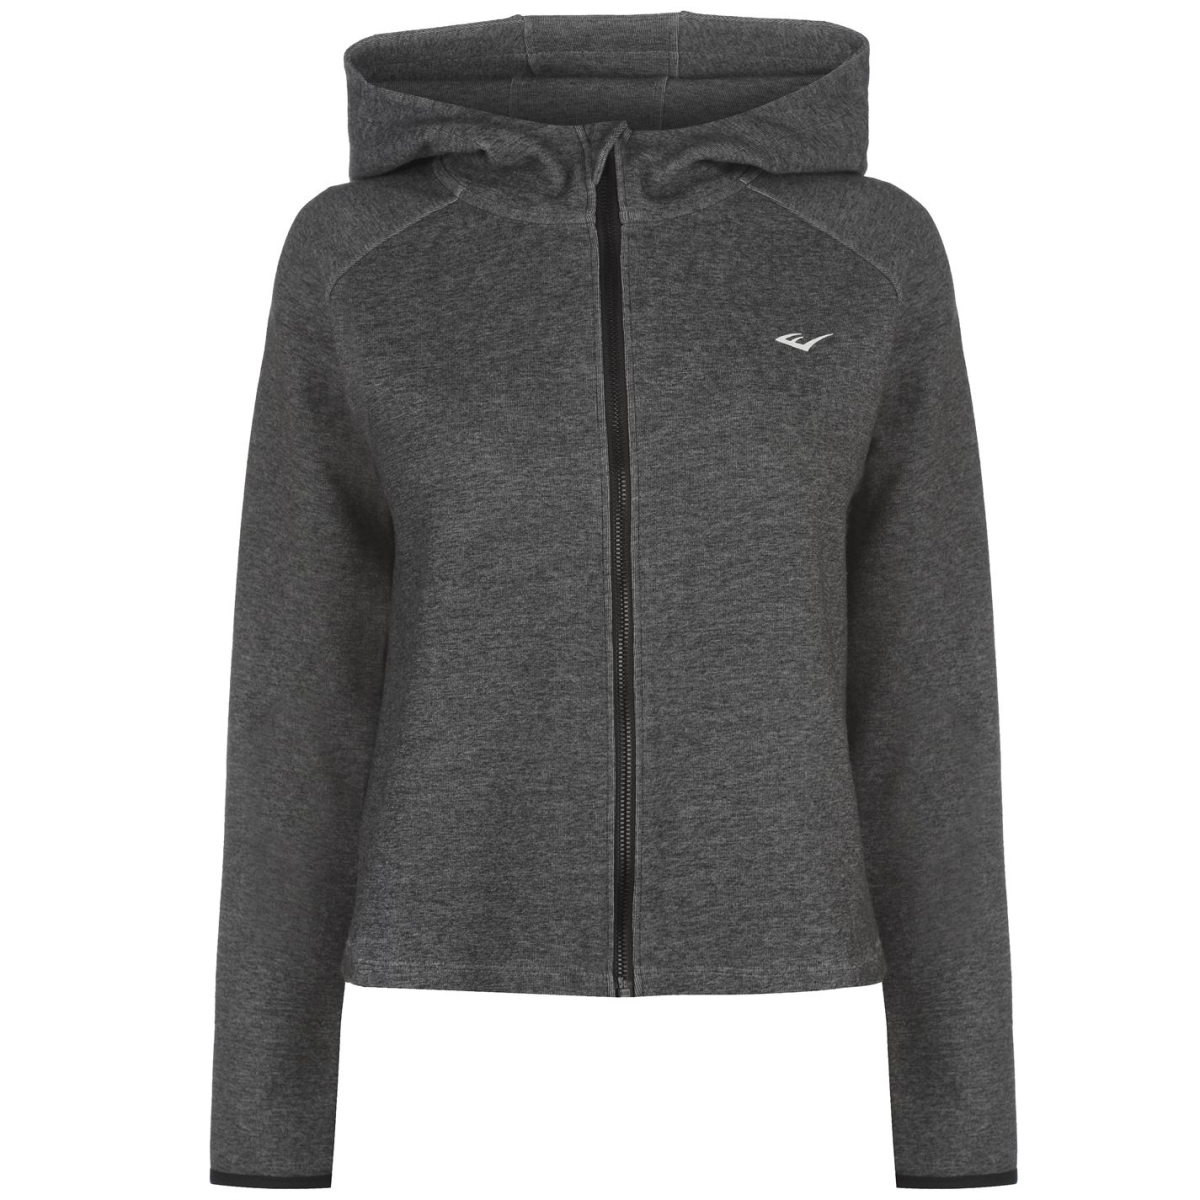 Everlast Open Back Zipped Kapuzenpullover Kapuzenjacke Damen